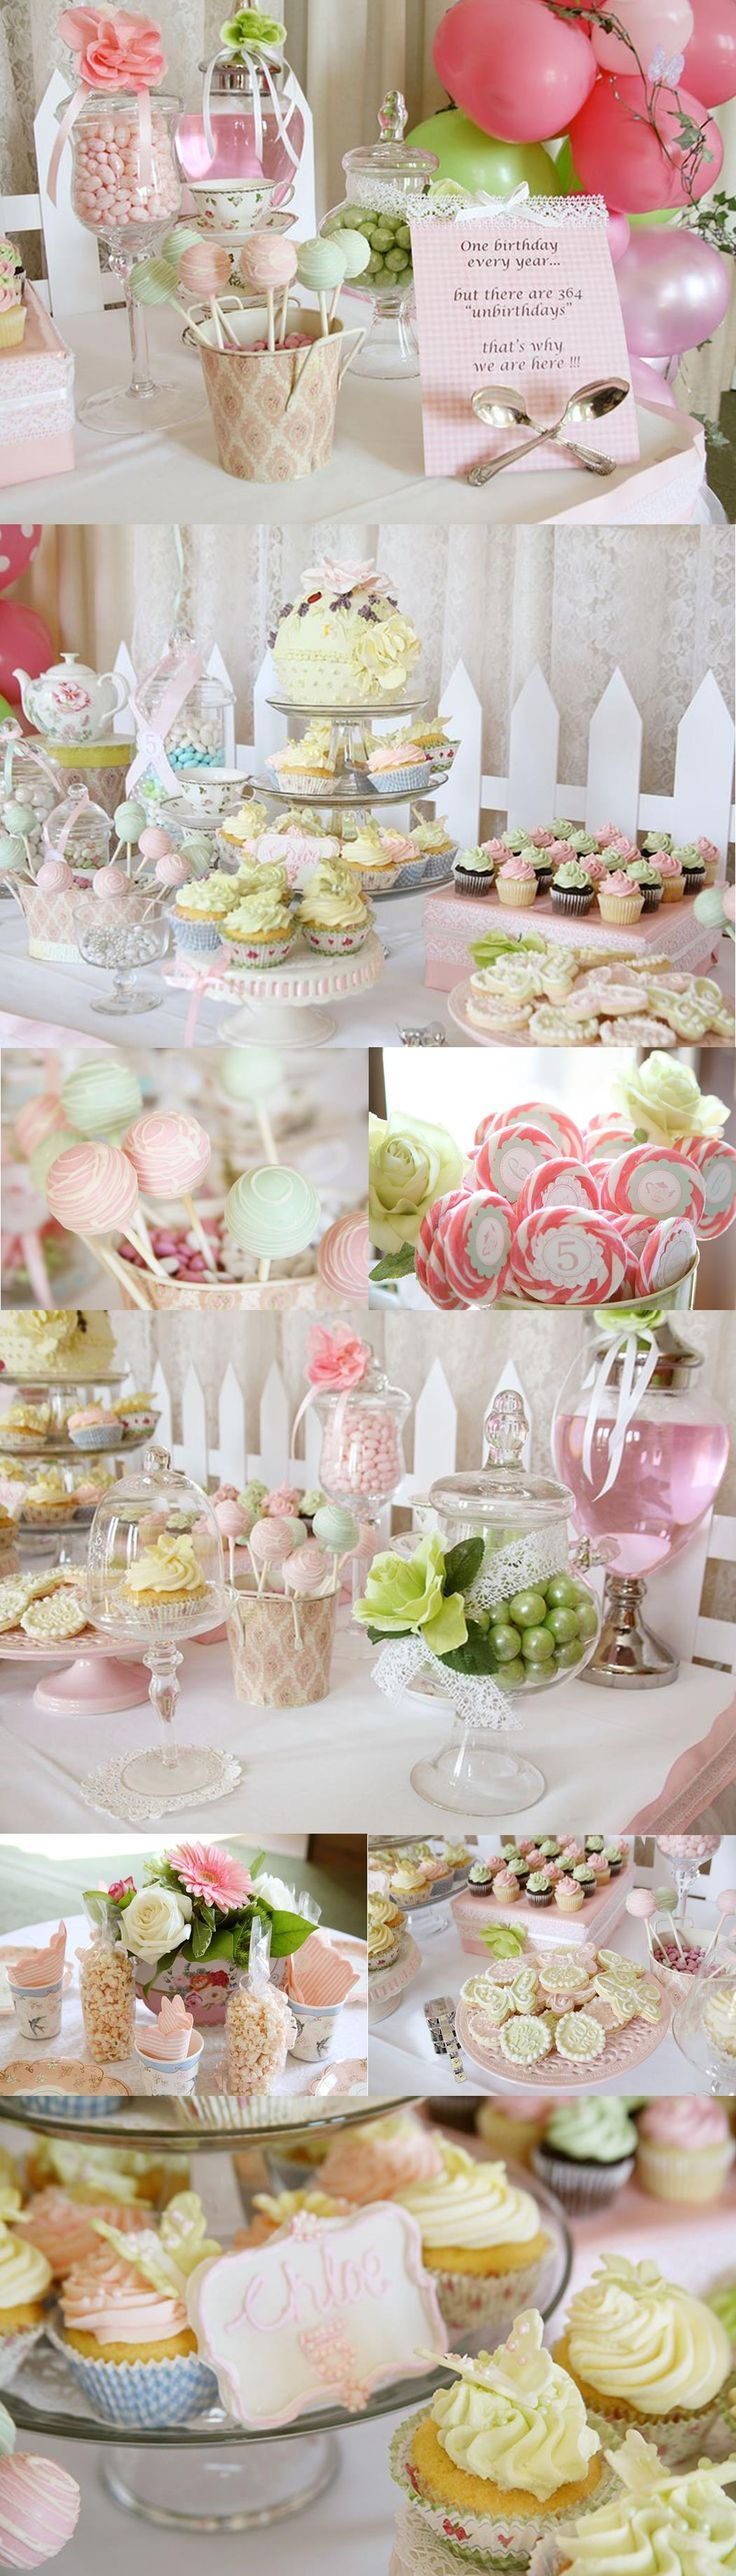 27 best Tea Party images on Pinterest | Birthdays, Girl parties and ...